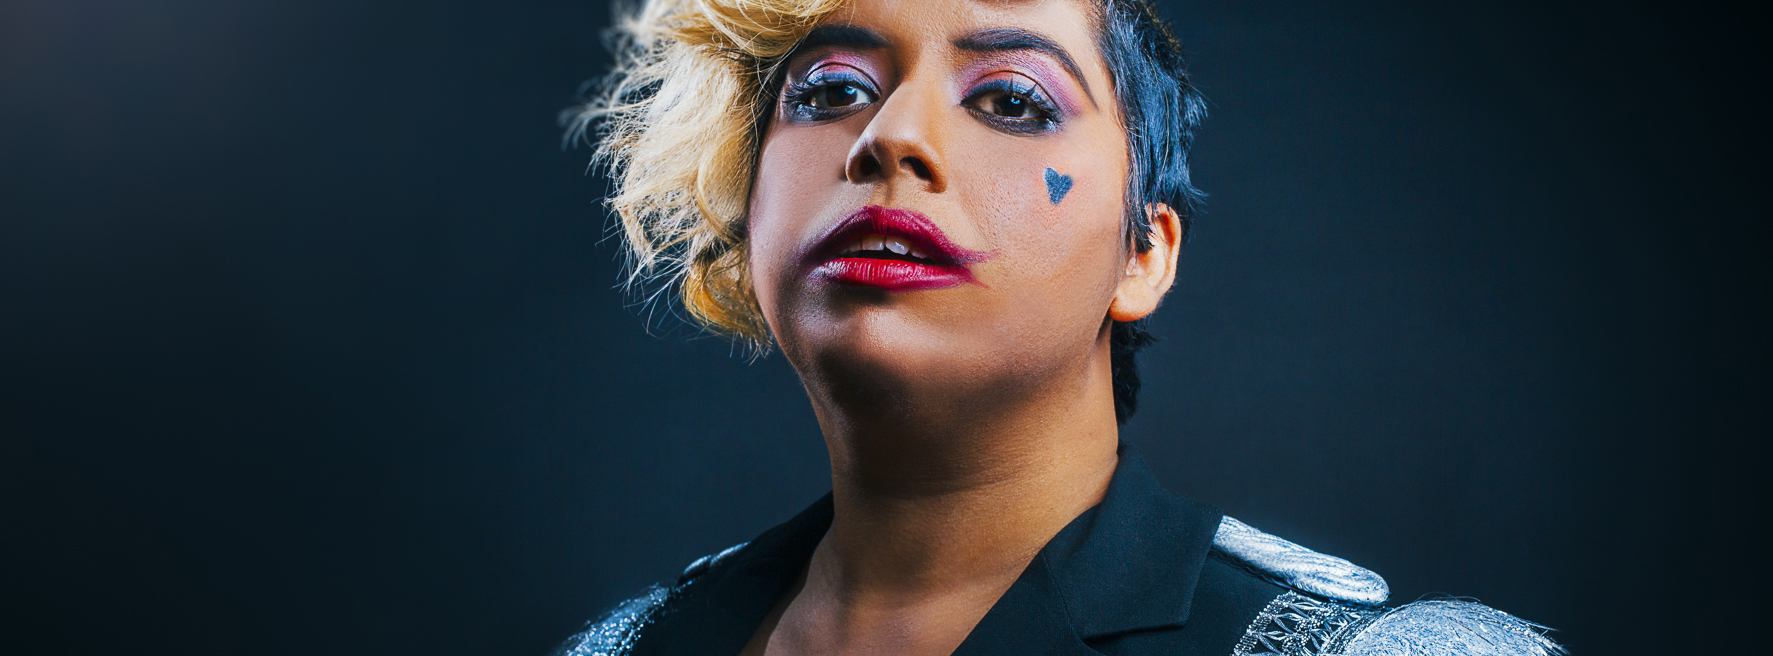 A woman with bold circus makeup on her face.